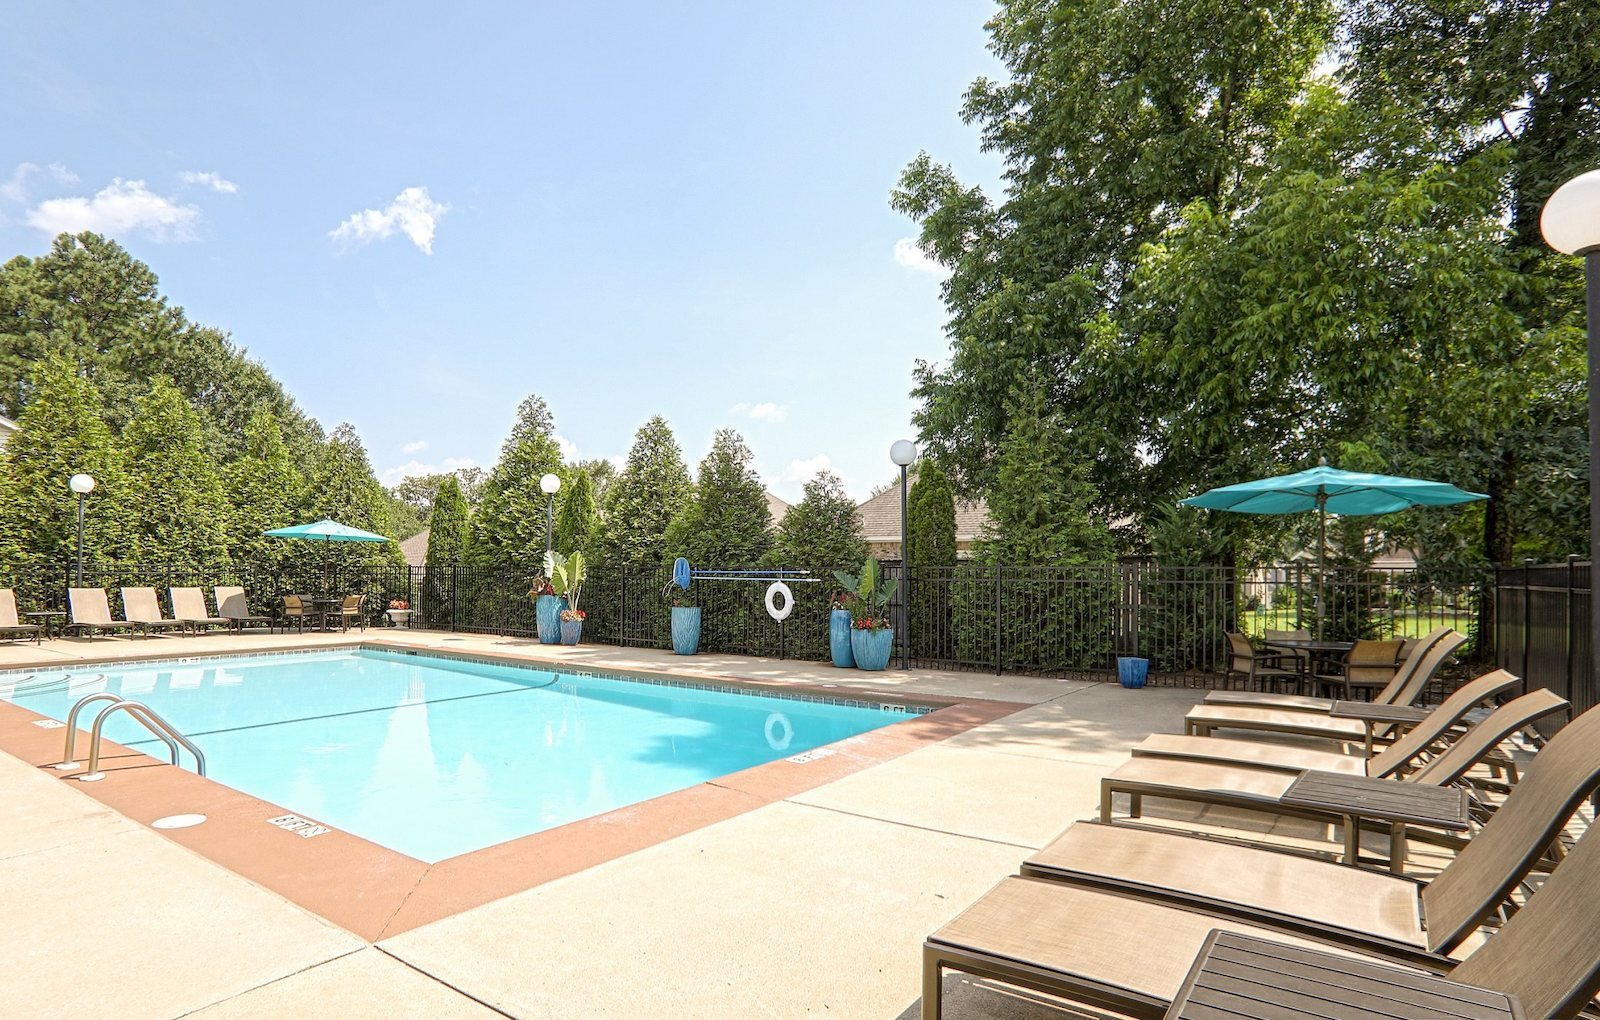 Swimming pool with sundeck and lounge furniture at The Point at Fairview Apartments, Prattville, Alabama